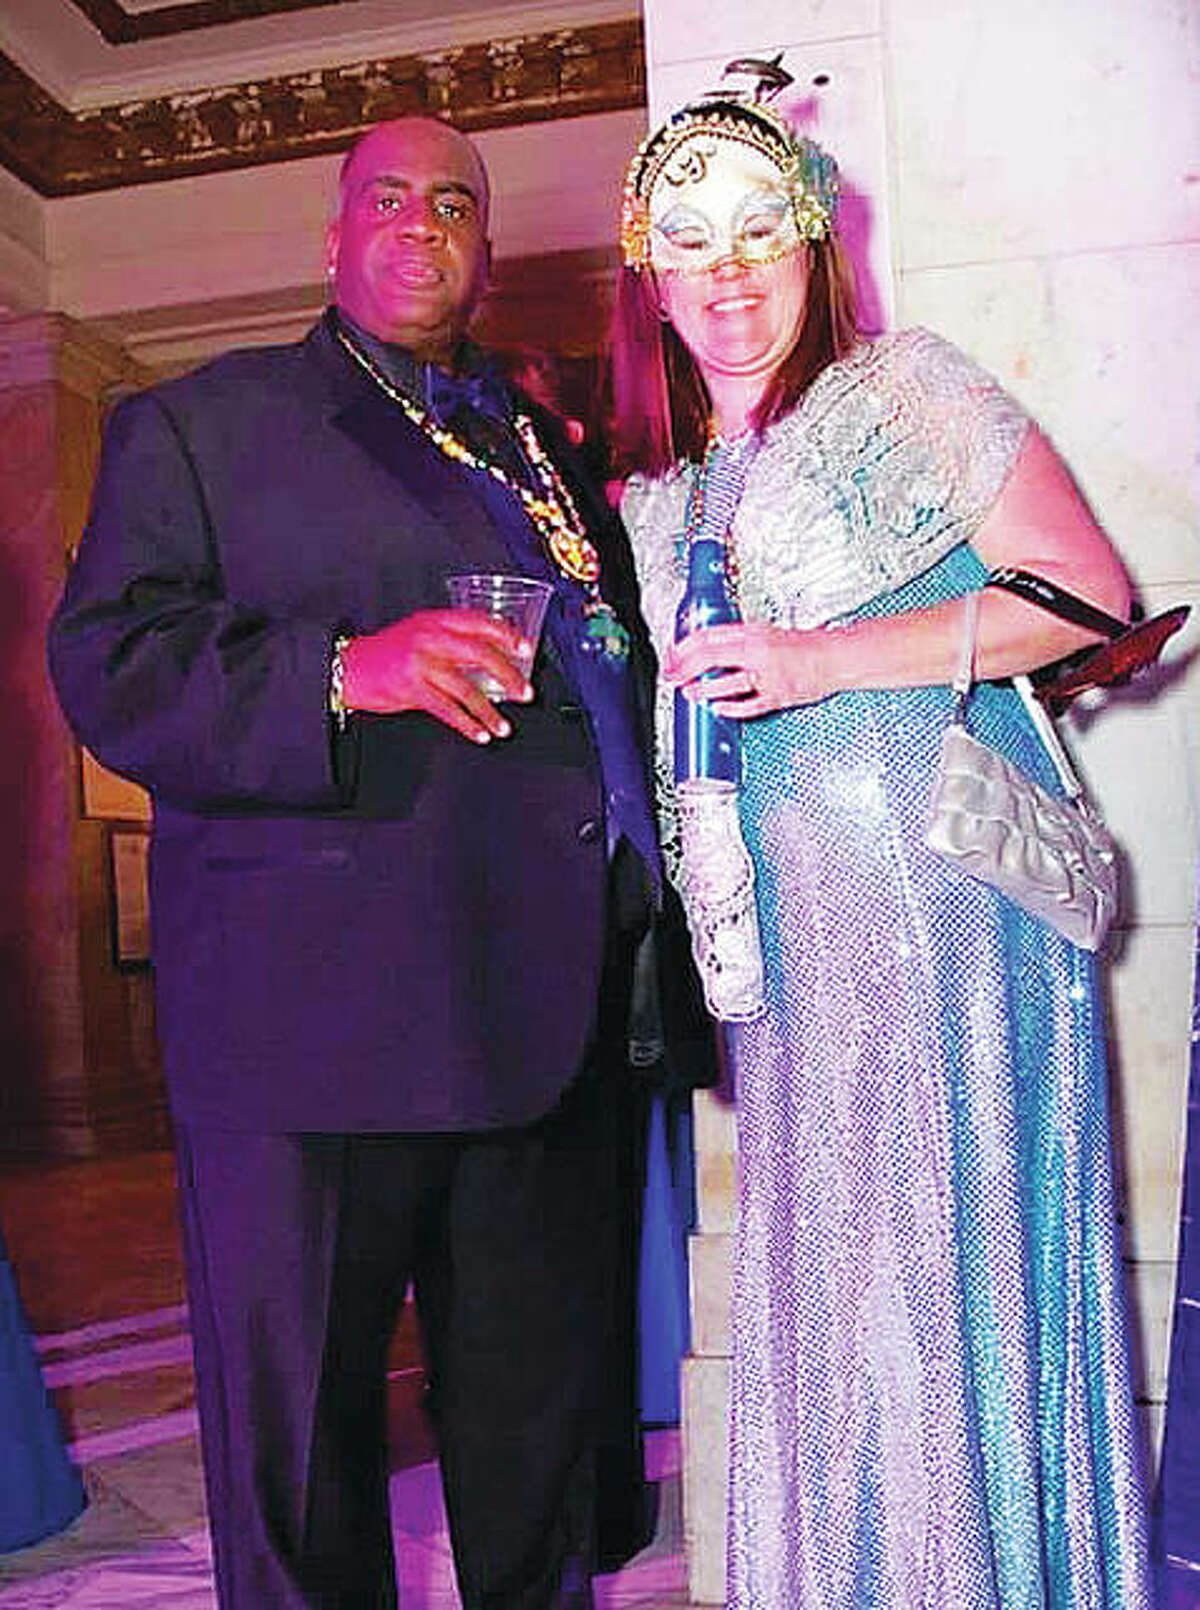 Alton's Ron Boles, left, originally from St. Louis, and his significant other and business partner, Jimi Jo Sinks, at the Mayor's Ball, two years ago. The gala combines the elegance of the setting with the striking visuals of Mardi Gras. It features fine cuisine, cocktails, dancing and entertainment ranging from traditional to spectacular. This charitable event is hosted by the Mardi Gras Foundation, and the proceeds go to create community grants that have shown demonstrable benefits to the Soulard and Downtown St. Louis communities since 2003. This year's Mayor's Ball takes place from 7 p.m to 12 a.m. Friday, at the Rotunda in St. Louis City Hall. Ticket costs start at $150. Visit www.stlmardigras.org for tickets and more information.